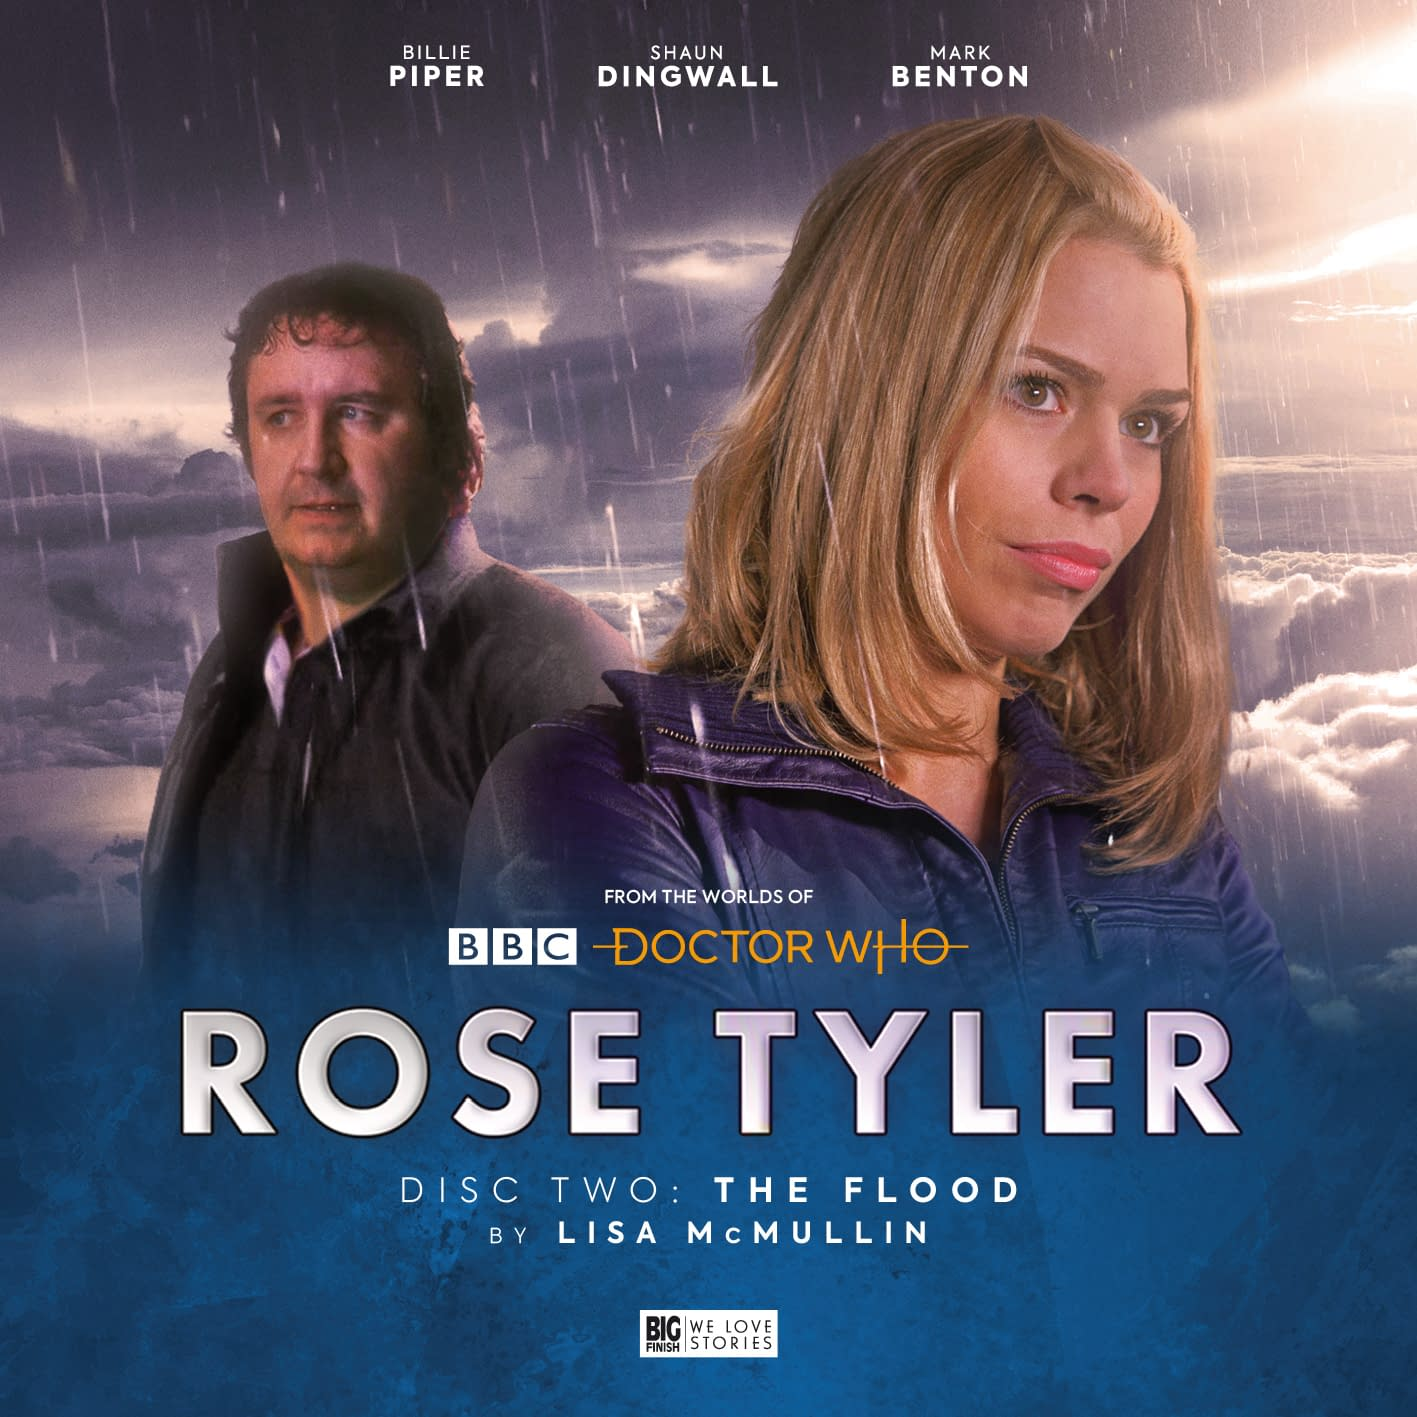 """""""Rose Tyler: The Dimension Cannon"""": Billie Piper & Co. Shine in Big Finish """"Doctor Who"""" Audio Drama Spinoff [SPOILER REVIEW]"""